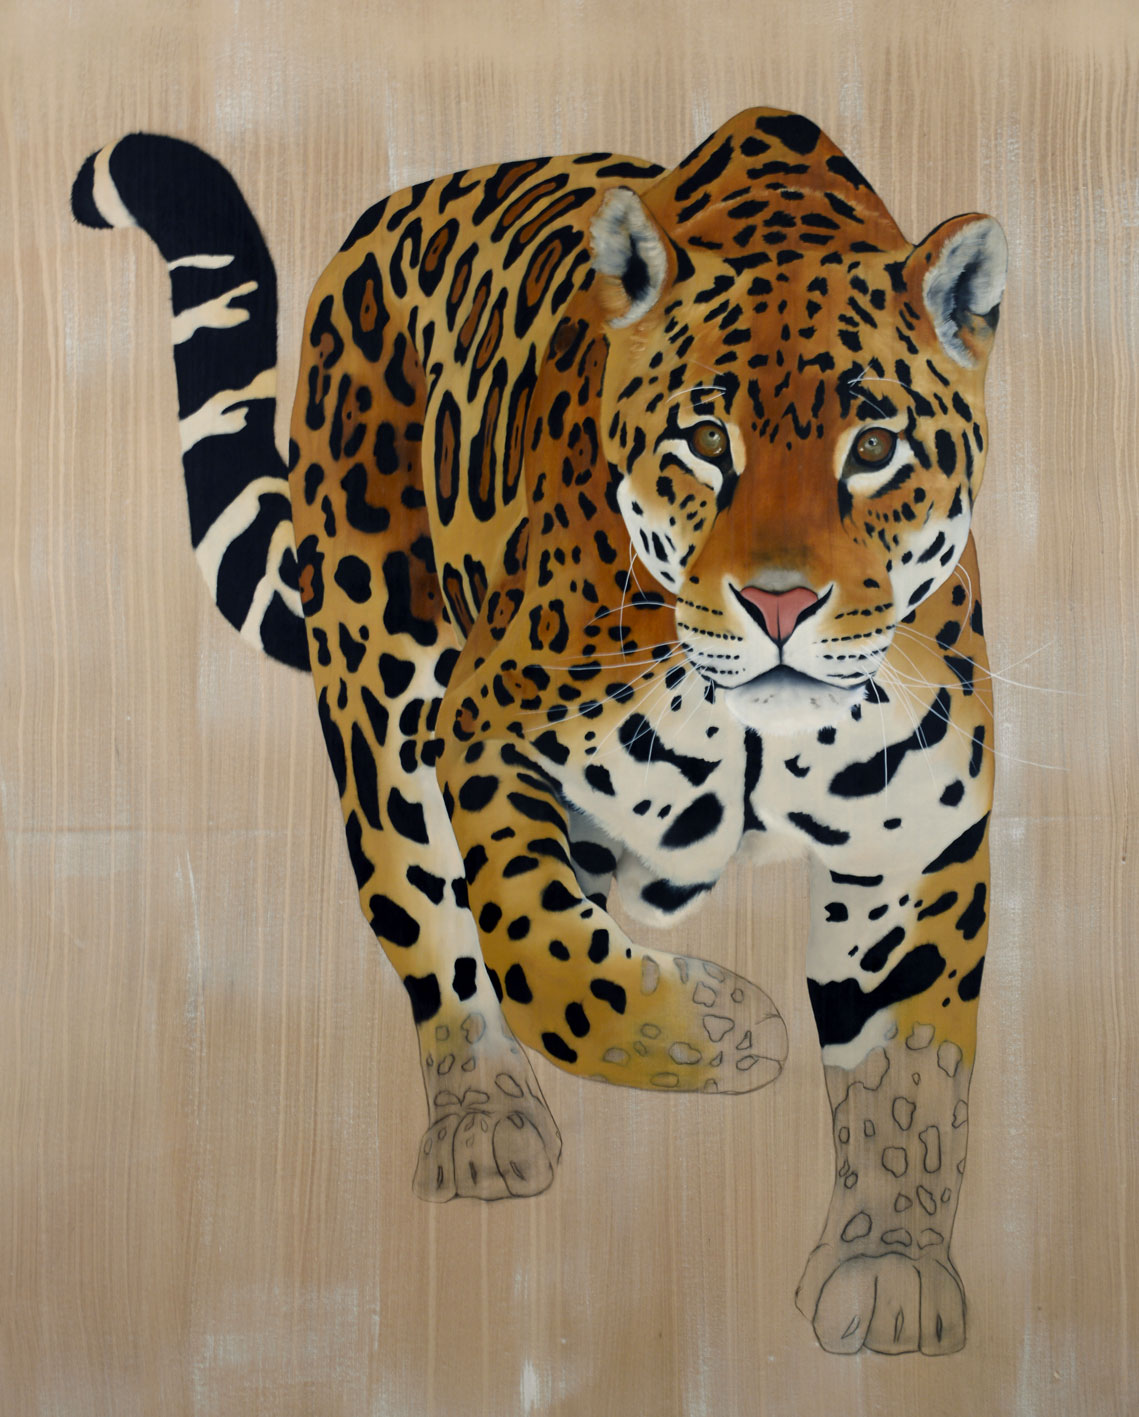 PANTHERA ONCA panthera-onca-jaguar-delete-threatened-endangered-extinction- Animal painting by Thierry Bisch pets wildlife artist painter canvas art decoration